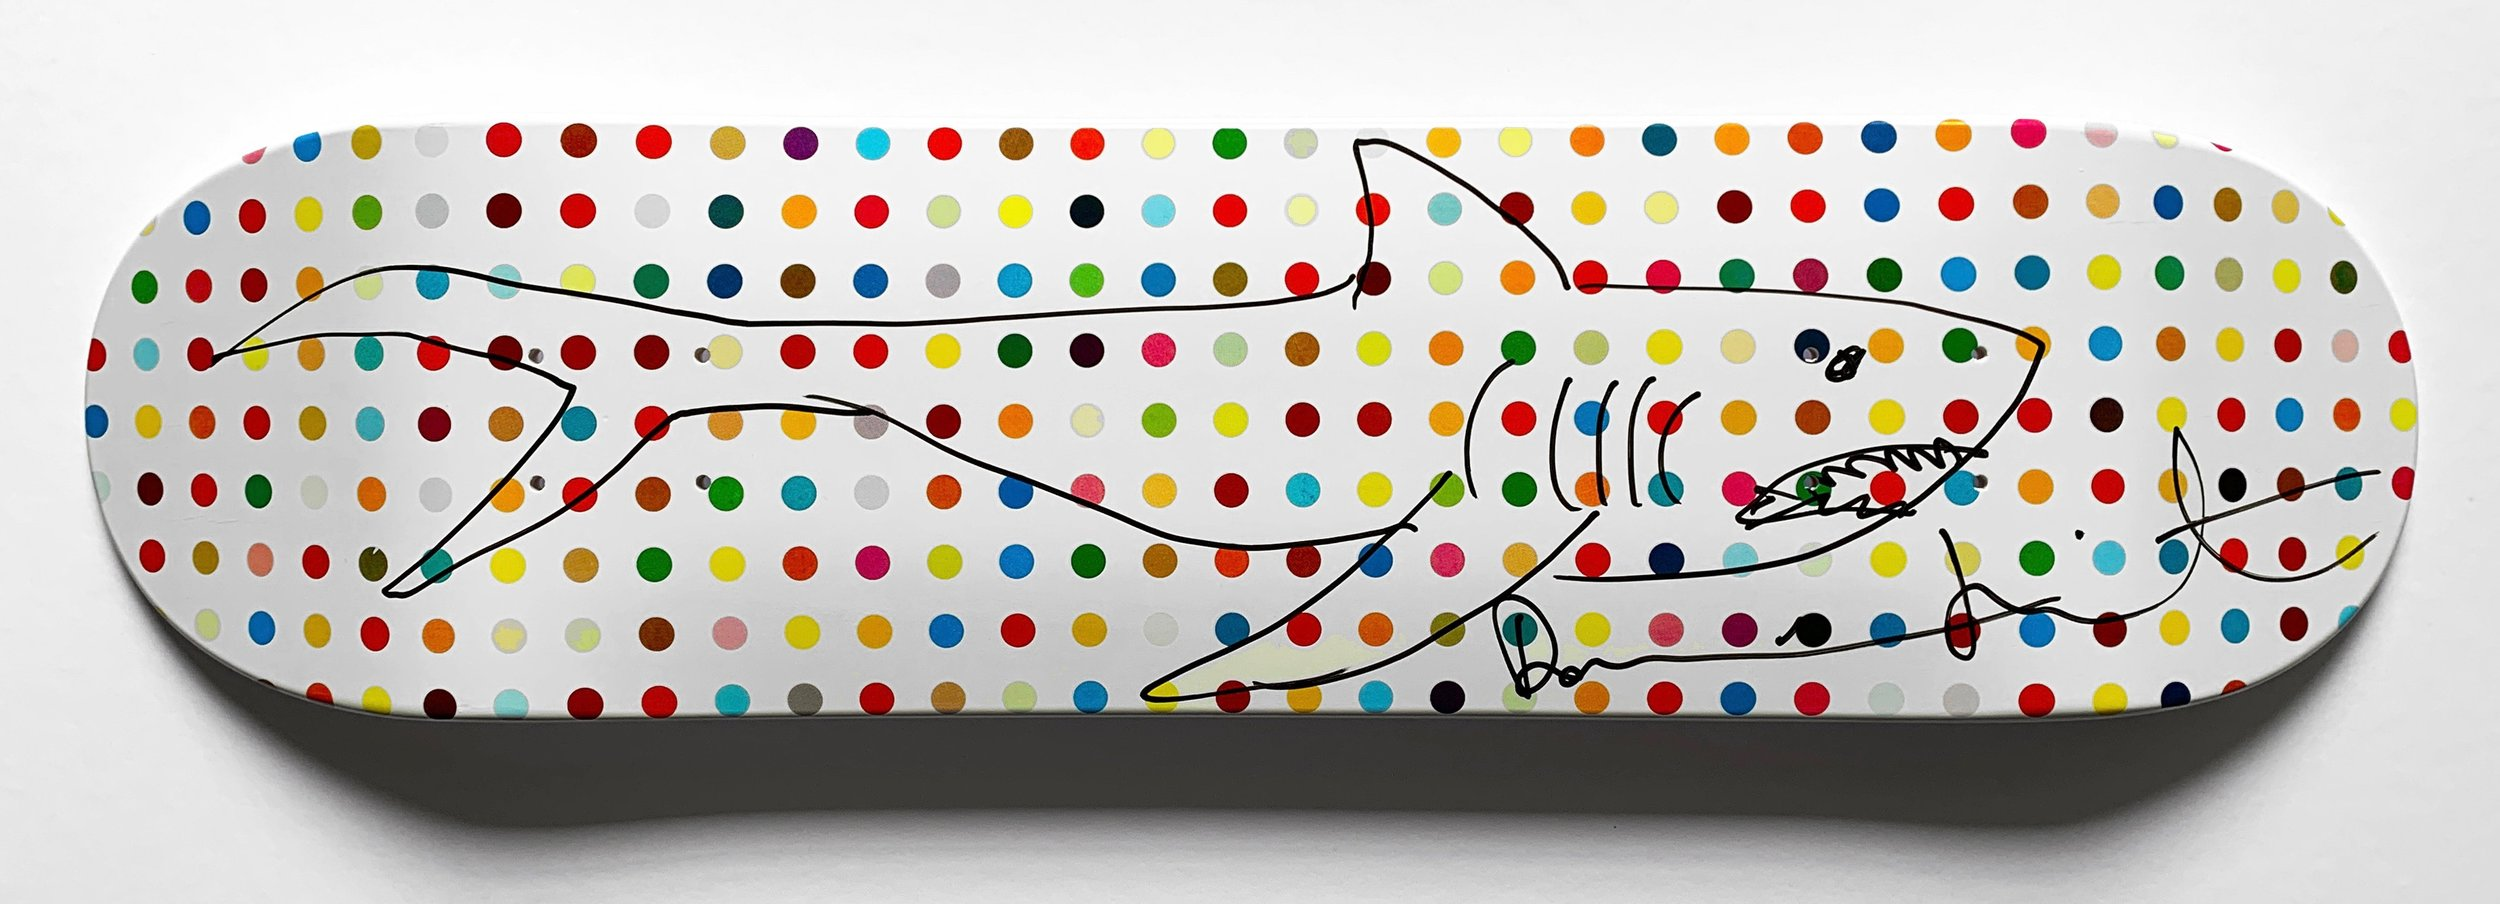 "Damien Hirst, Unique ""Shark"" Deck. Courtesy of Oliver Clatworthy Fine Art"